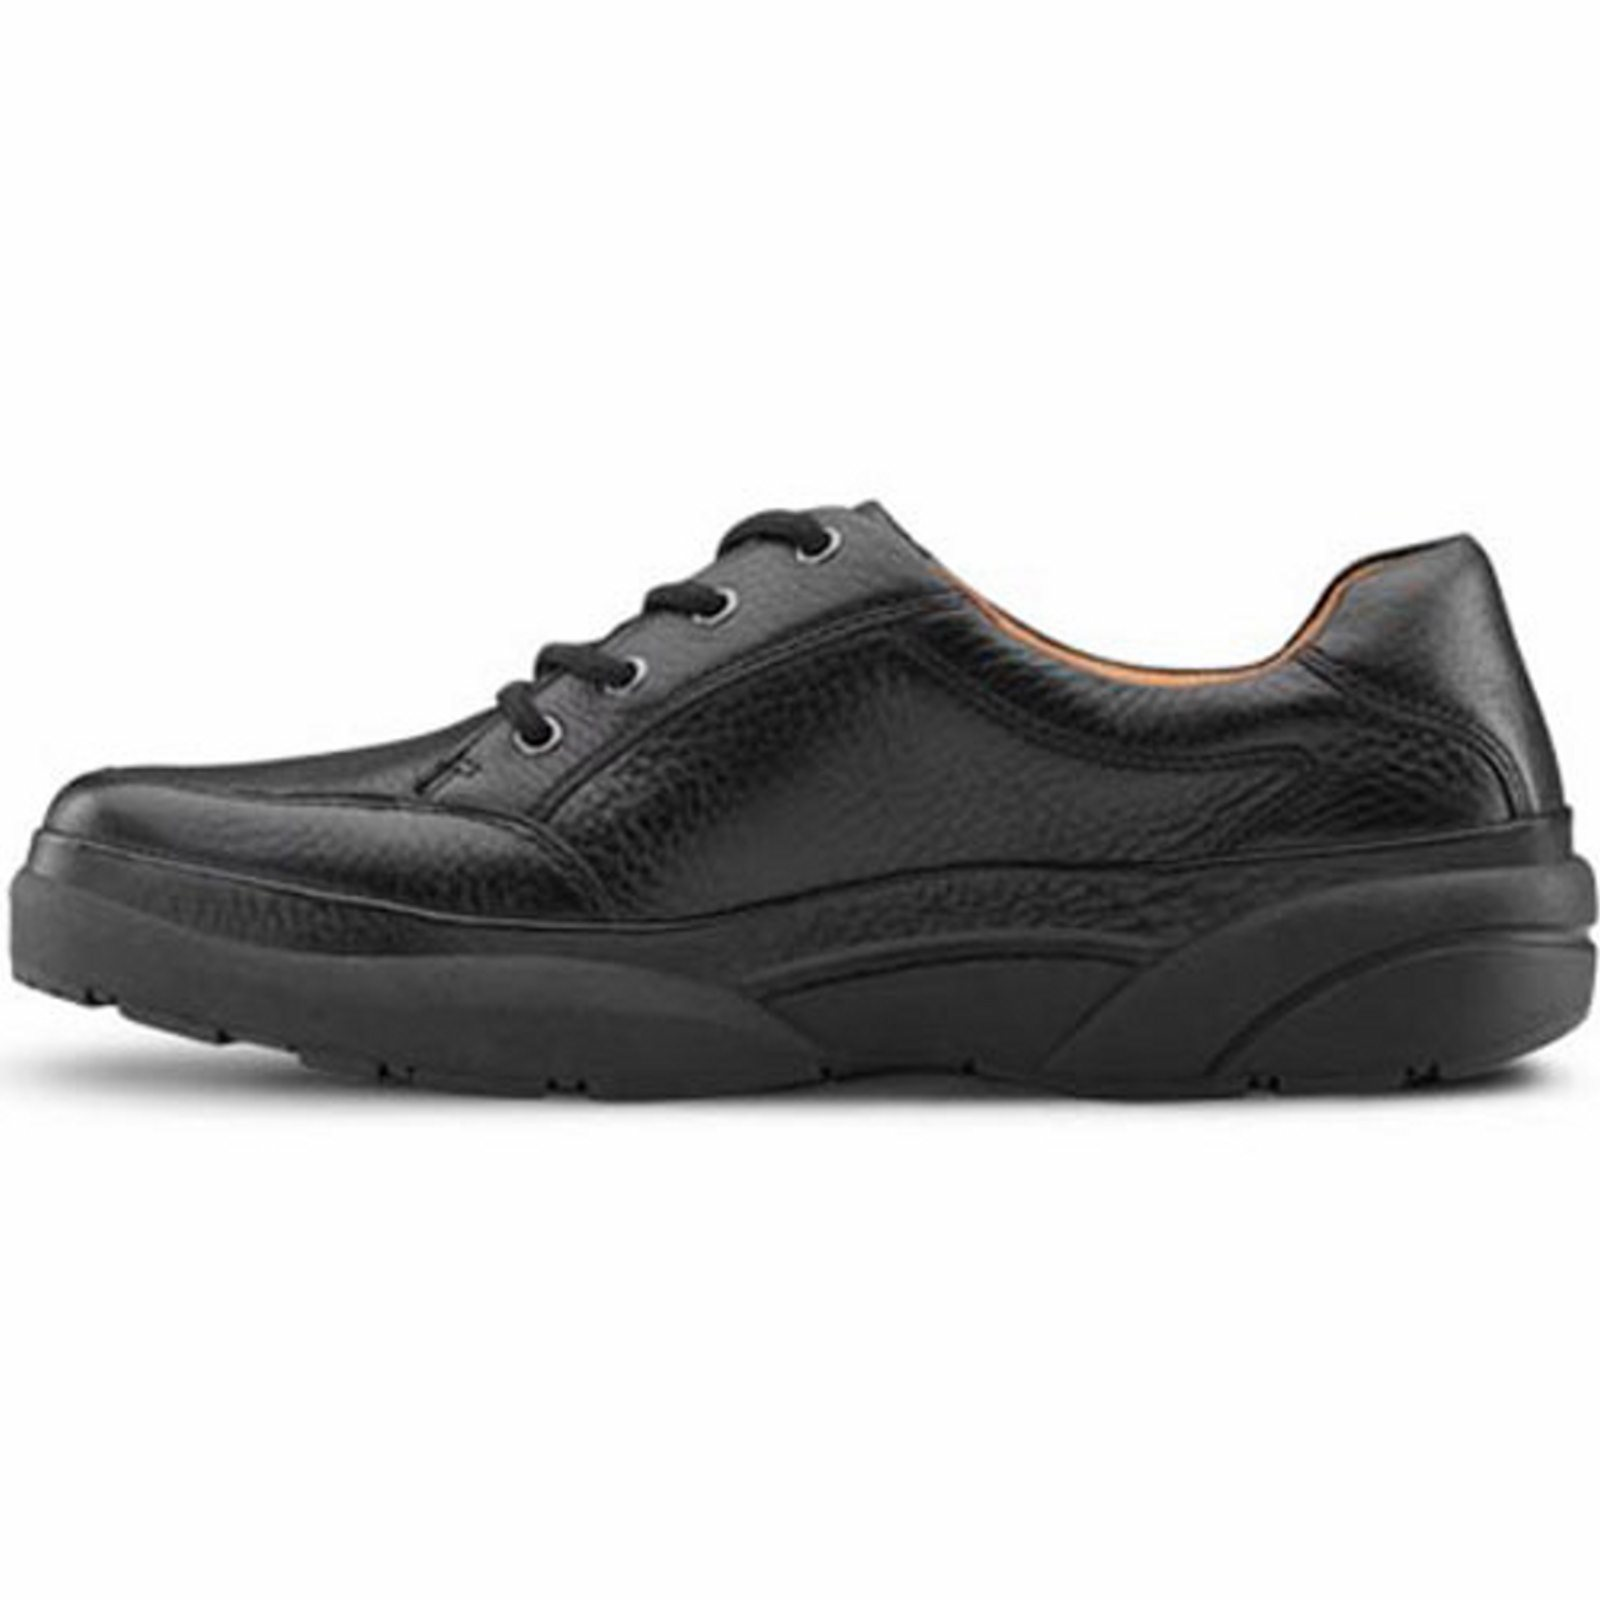 Dr. Comfort Justin Men's Casual Shoe: 13 Wide (E/2E) Black Lace